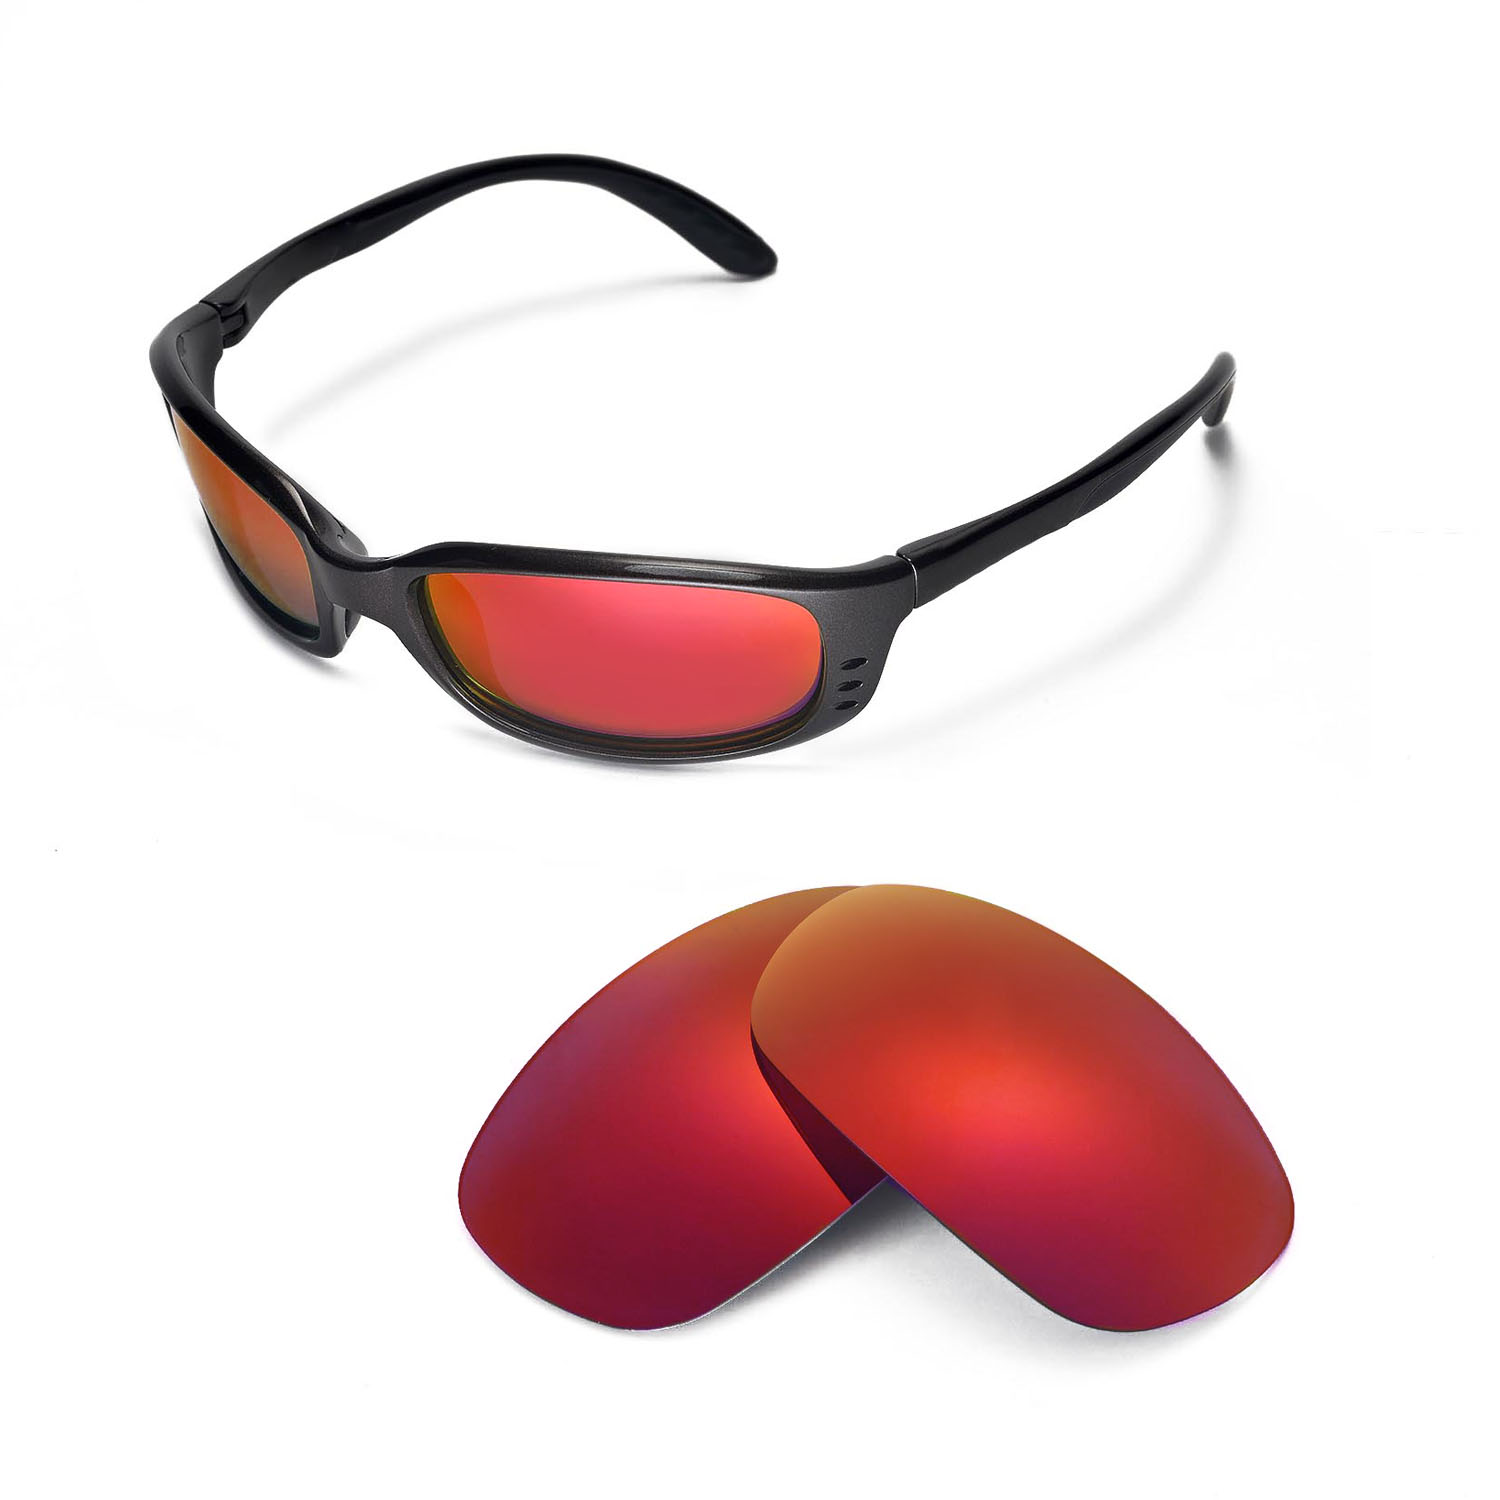 f95d8c92c4 Details about Walleva Fire Red Polarized Replacement Lenses For Costa Del  Mar Brine Sunglasses